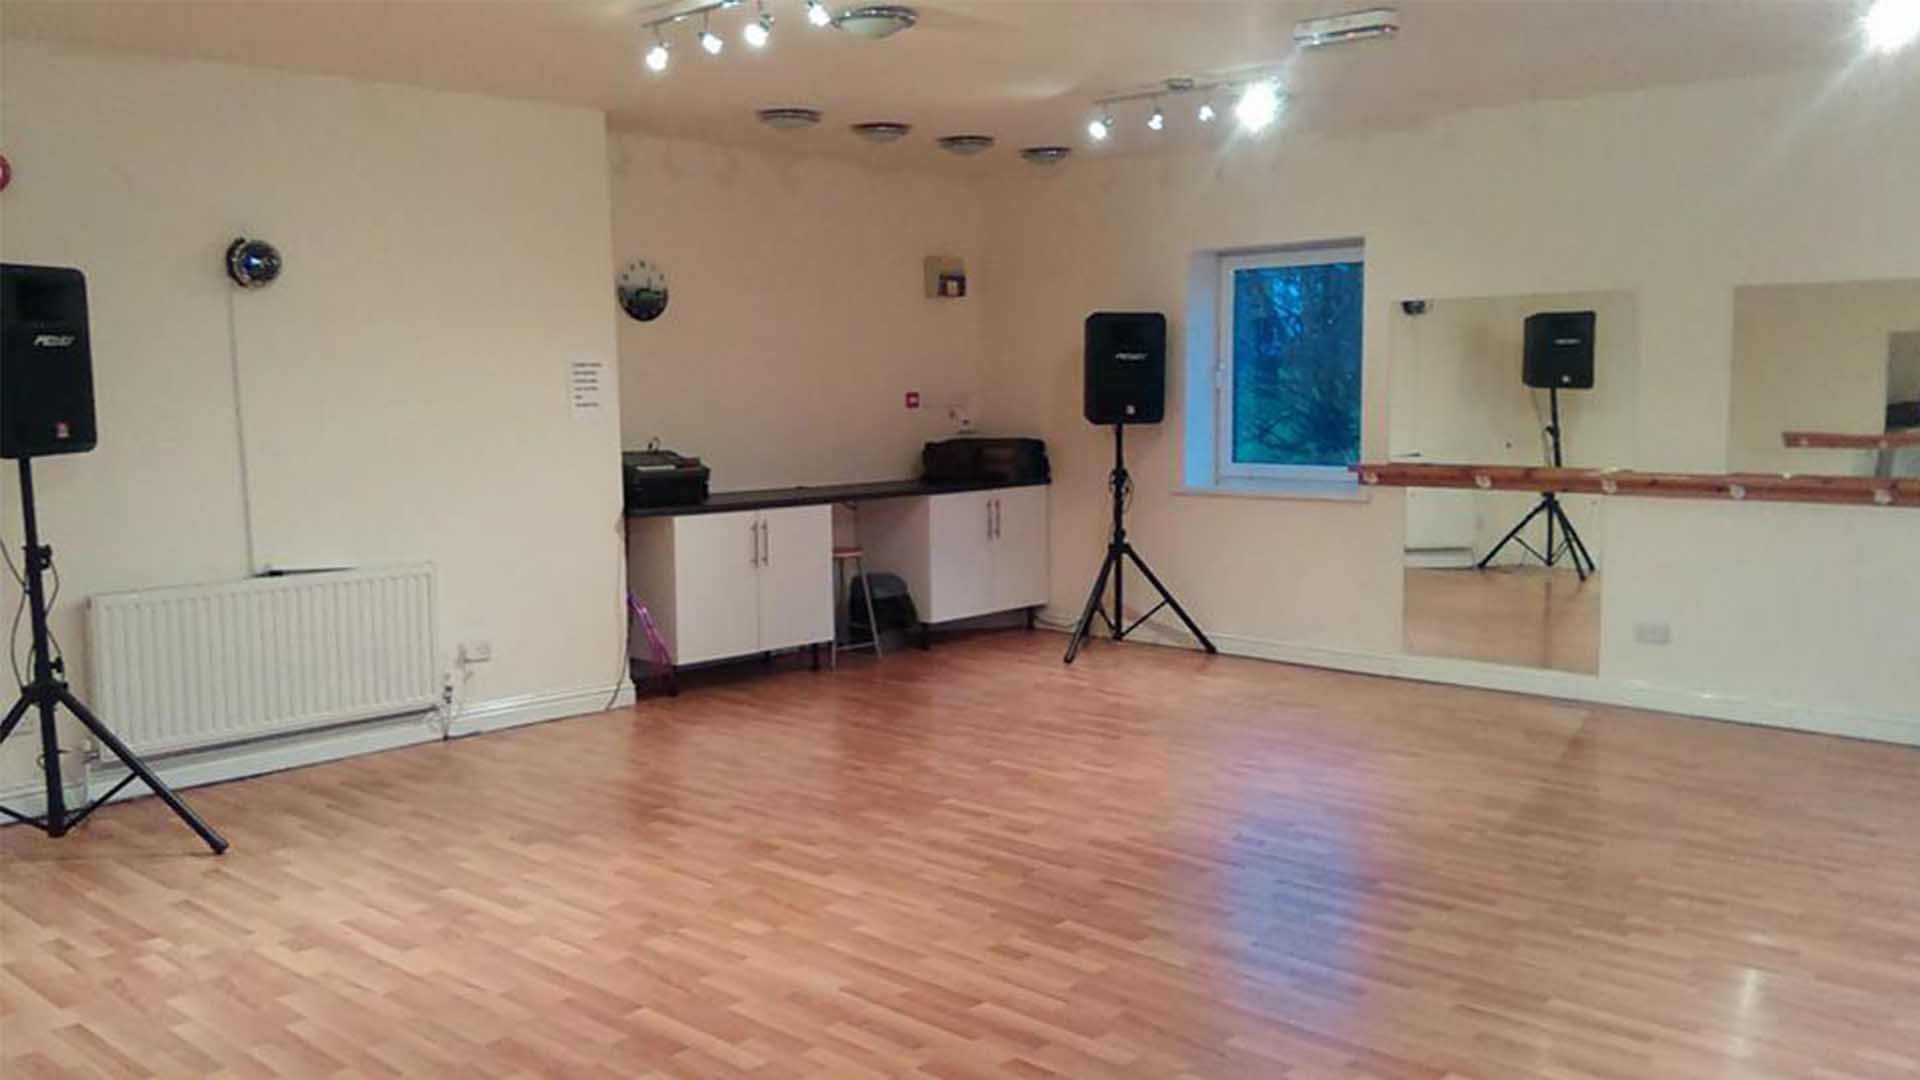 Dance Room with Speakers